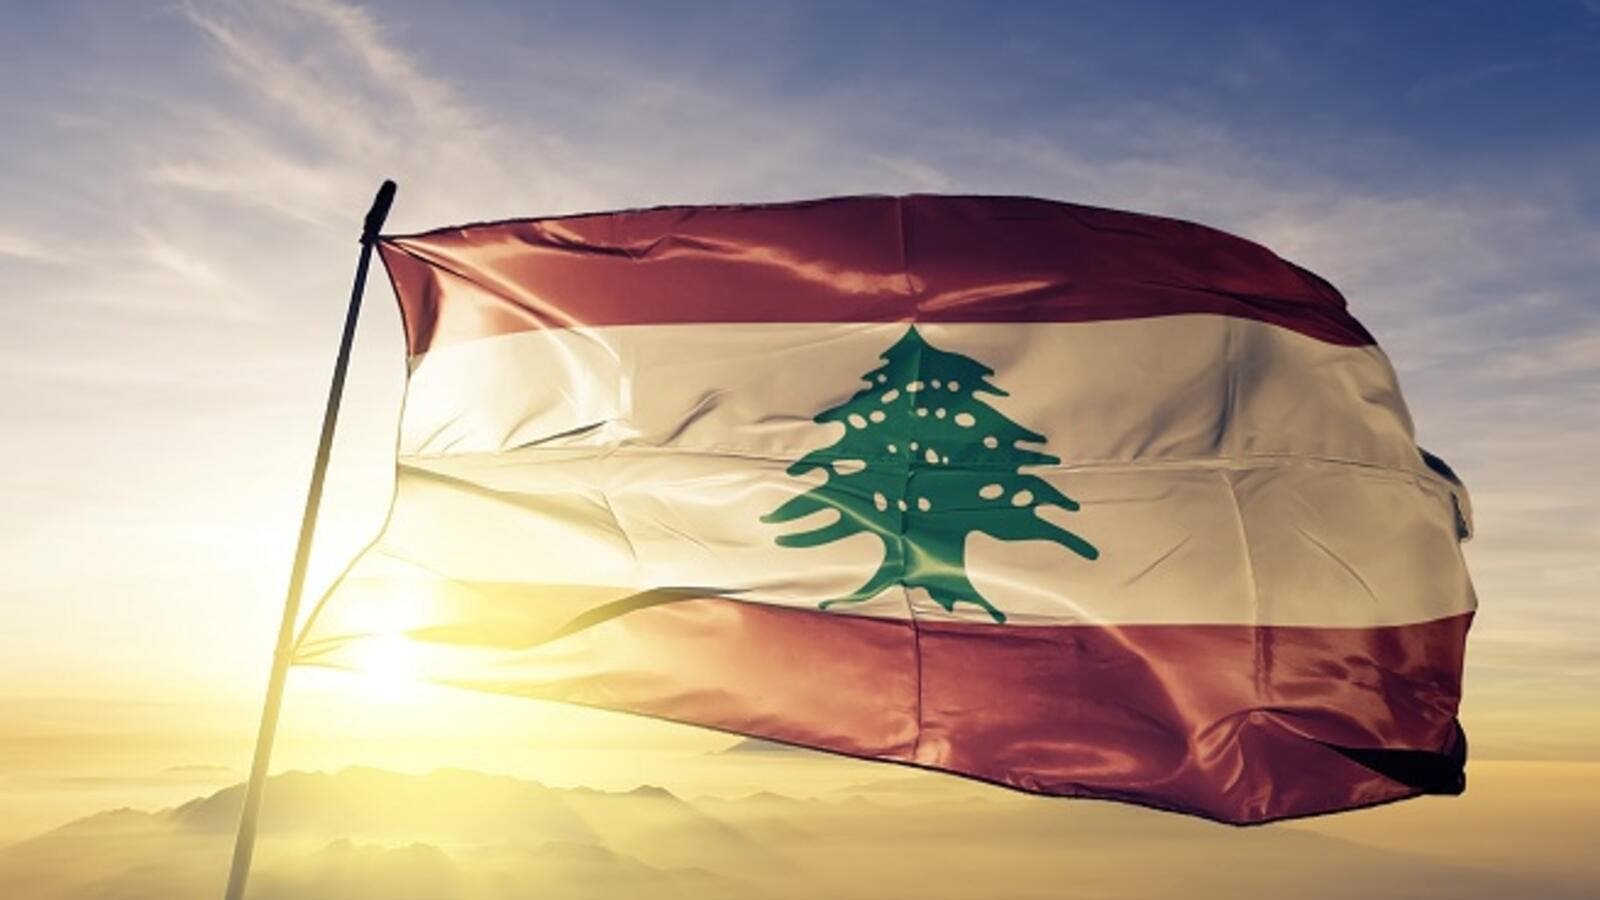 When a new government is formed, it will need to follow through on reform promises made at CEDRE in April 2018 to attract inflows of capital in order to reboot Lebanon's economy. (Shutterstock)